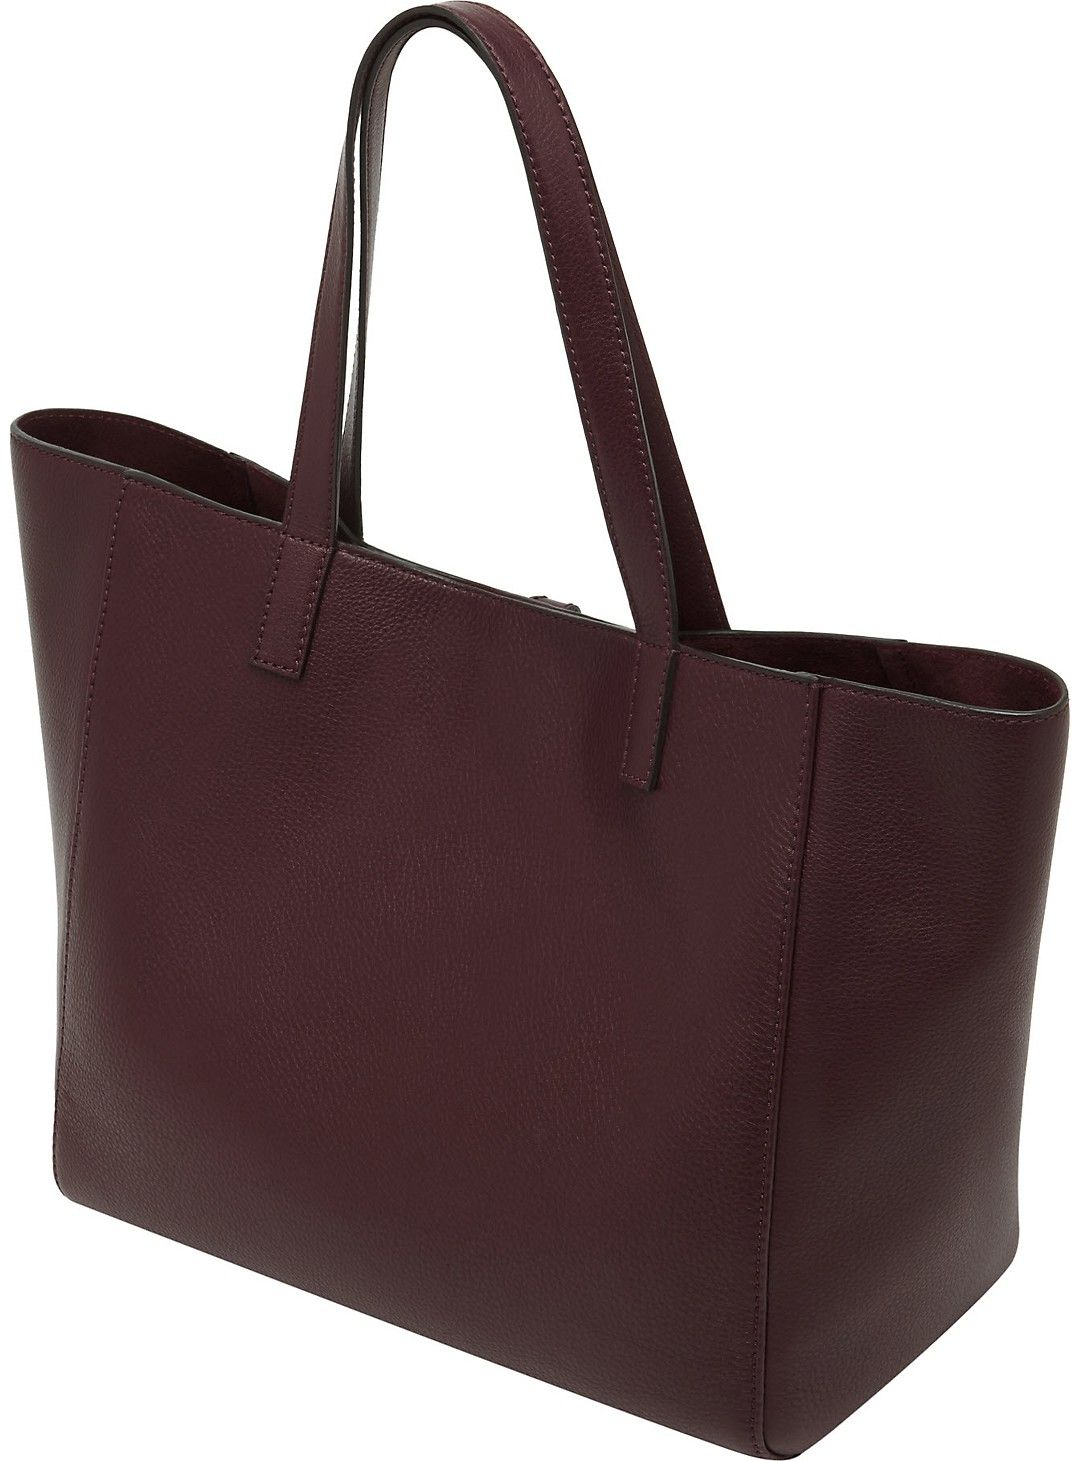 Mulberry Tessie Tote Selfridges